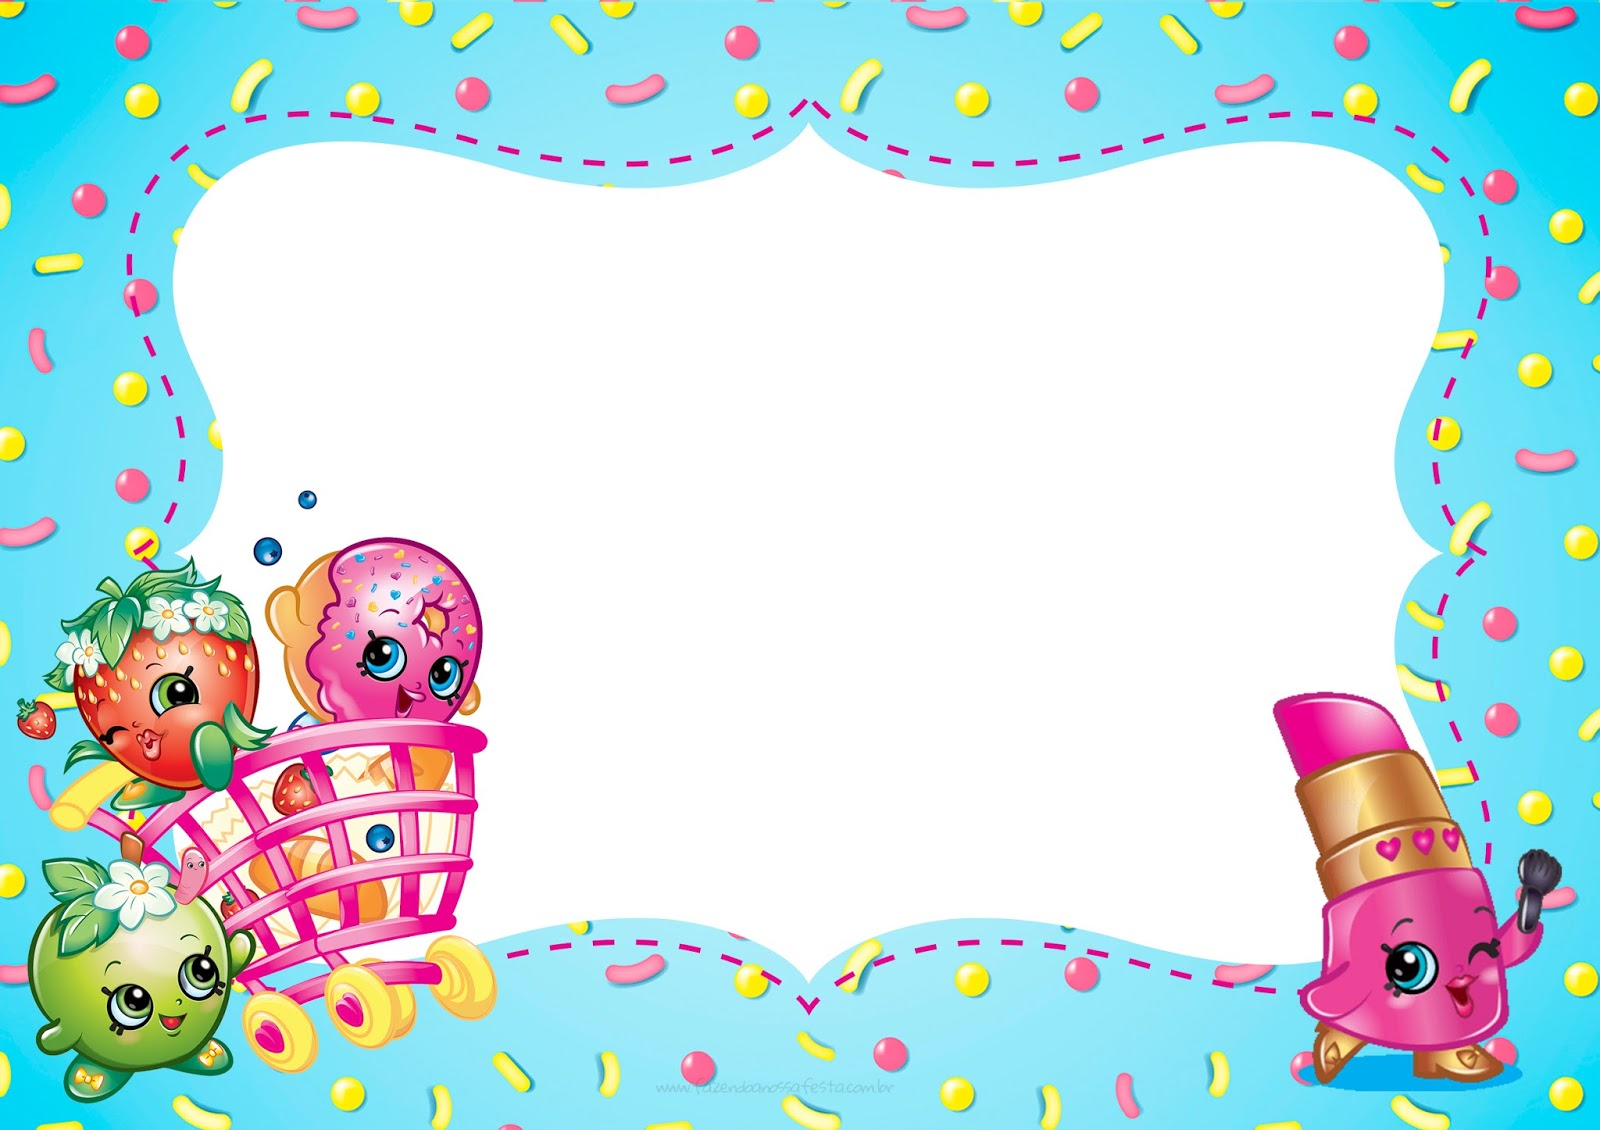 photo regarding Shopkins Printable Invitations identified as Shopkins: Totally free Printable Invites. - Oh My Fiesta! inside of english